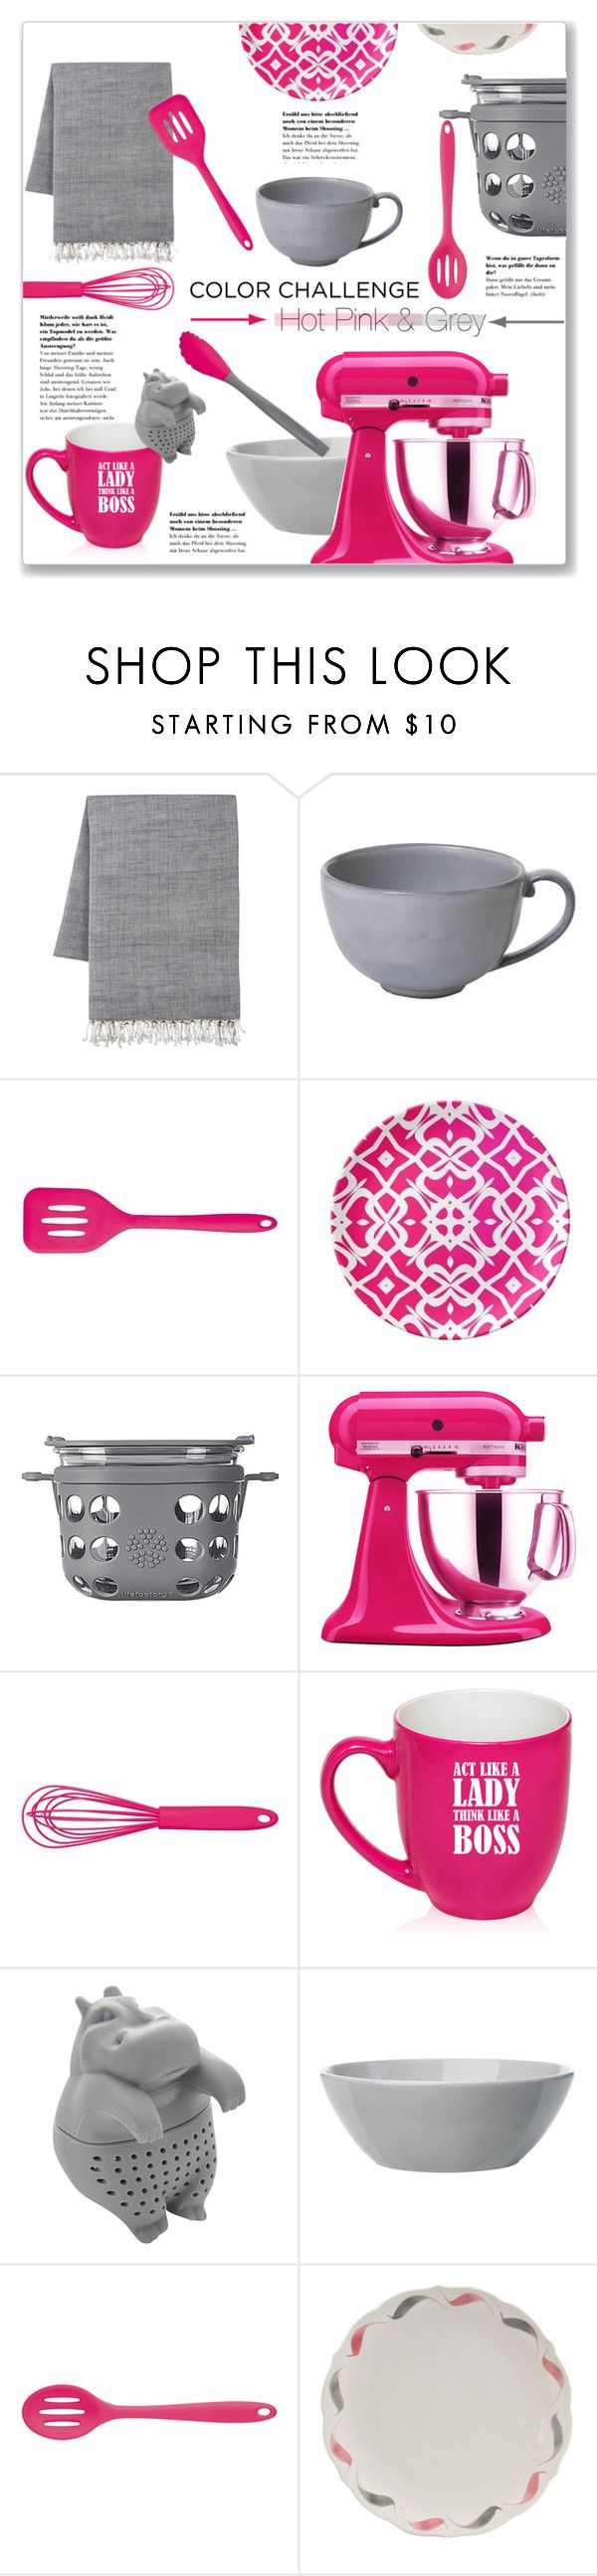 Kitchenaid Pink on Pinterest Kitchen with Hot Pink & Grey Kitchen